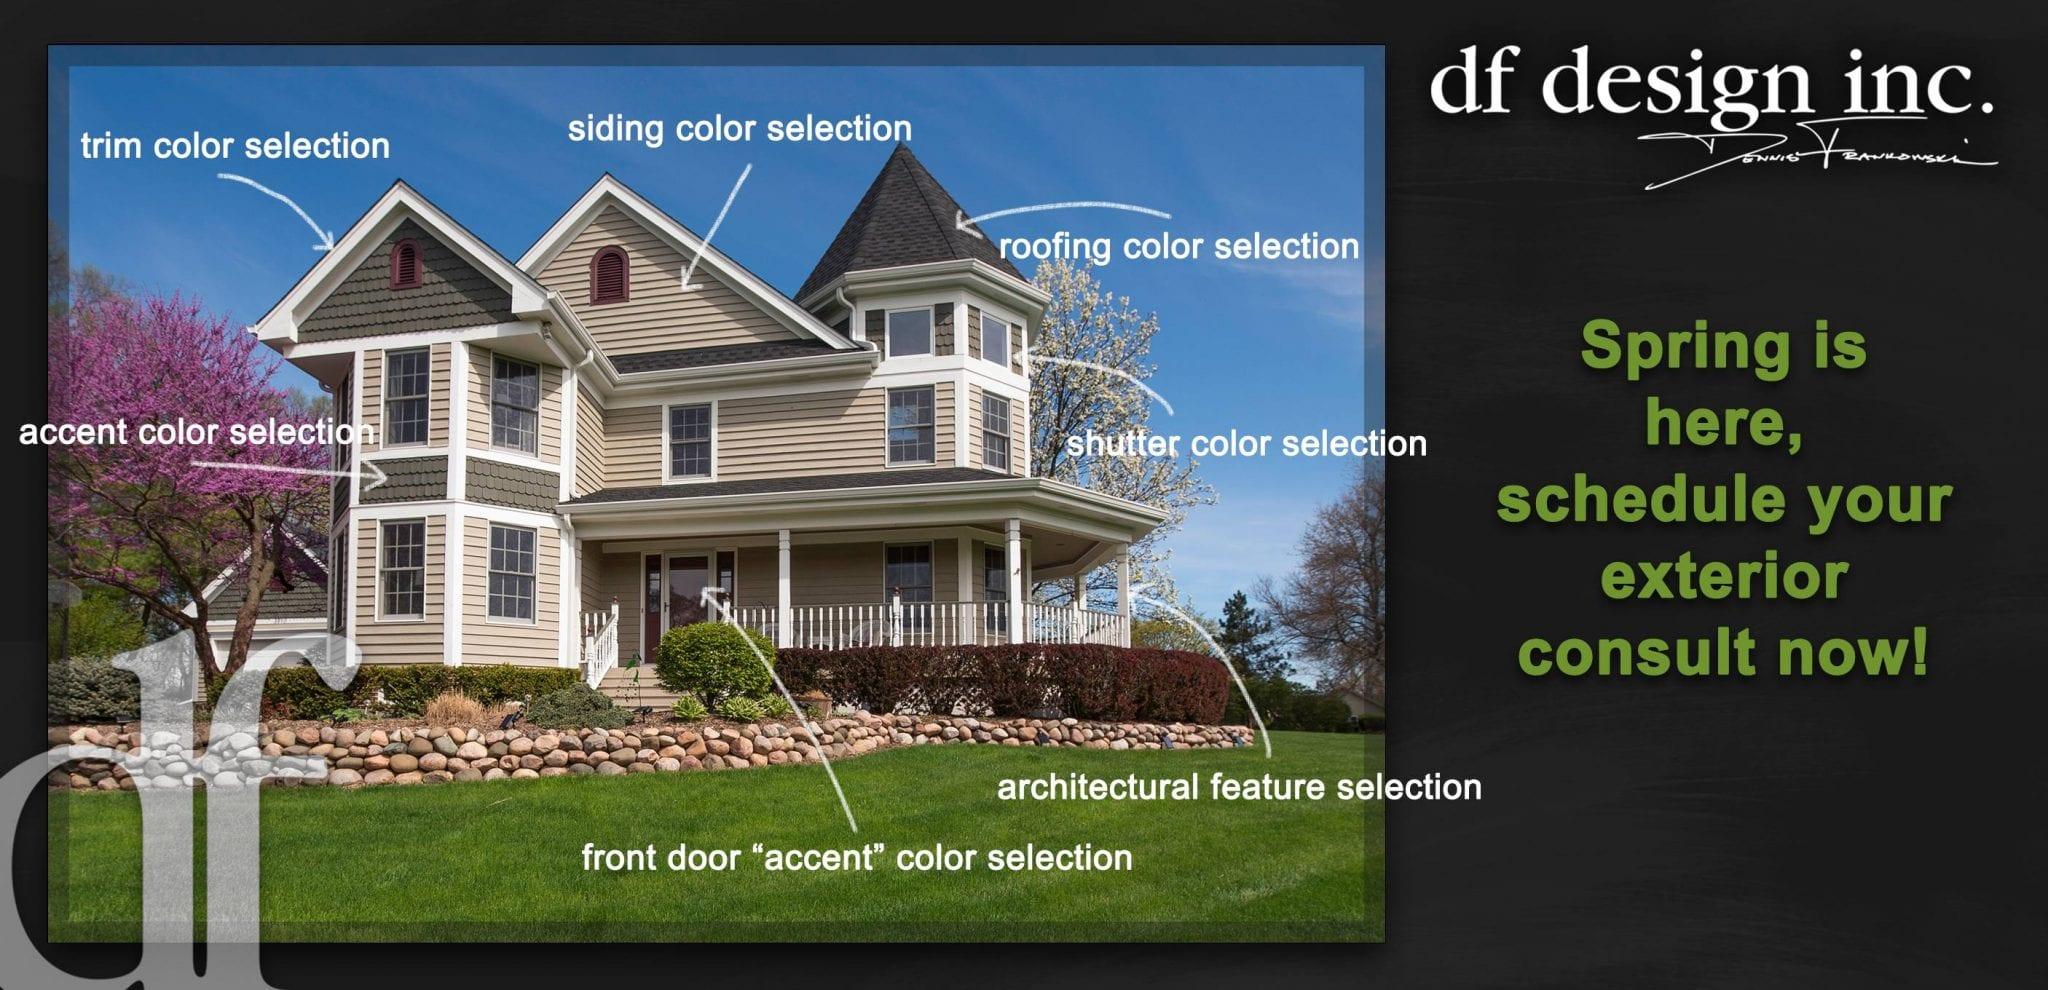 Exterior Painting Tips From an Interior Designer